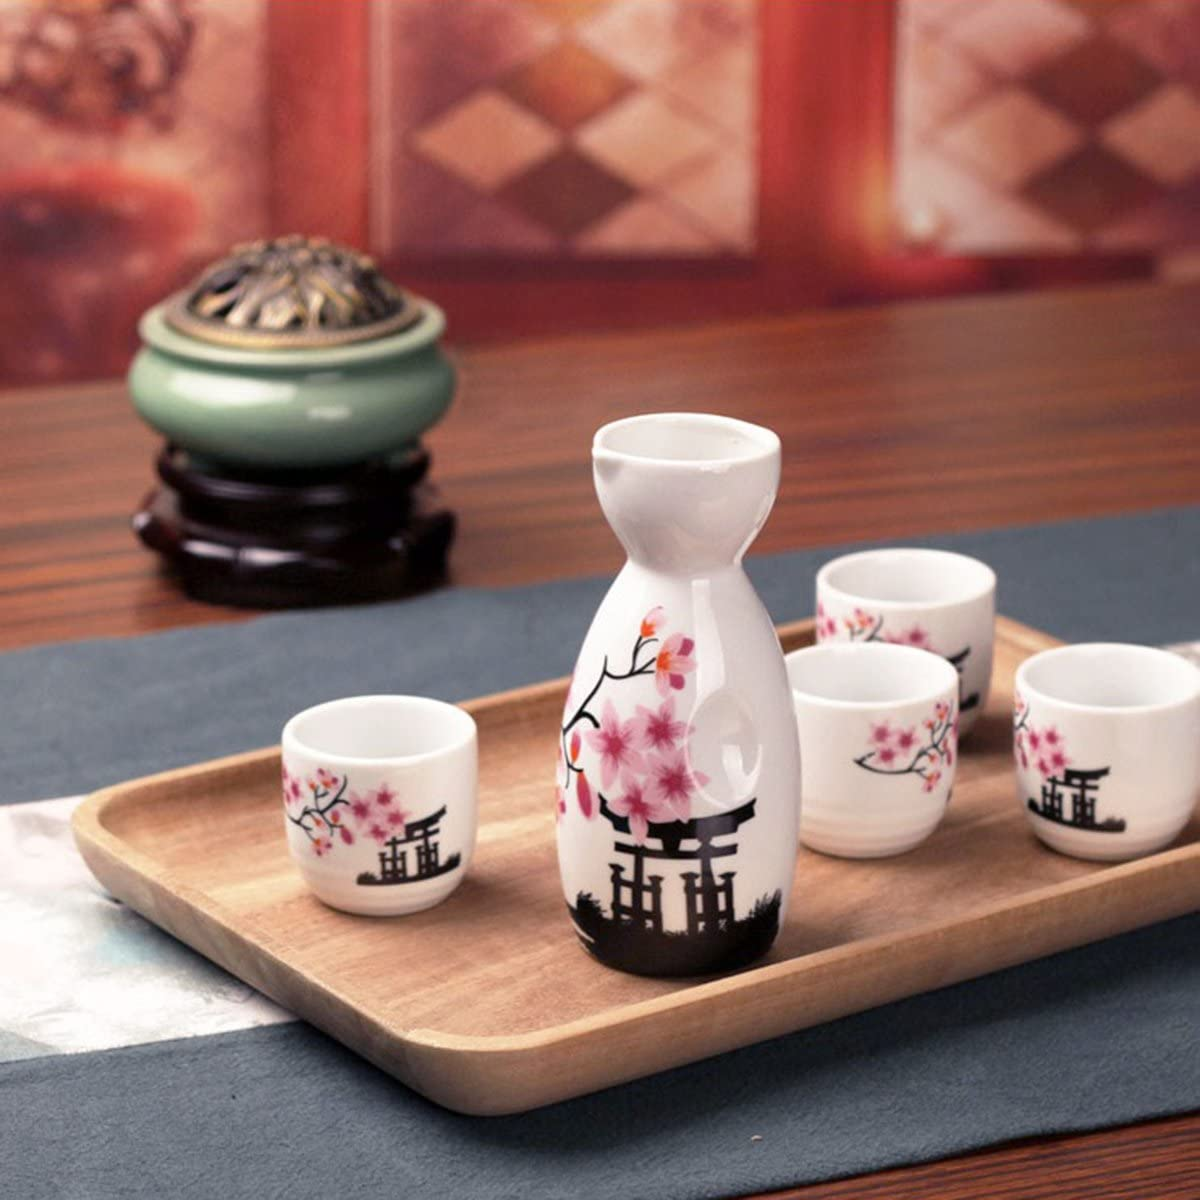 Sake bottle and drinking cups - Image by Amazon.com